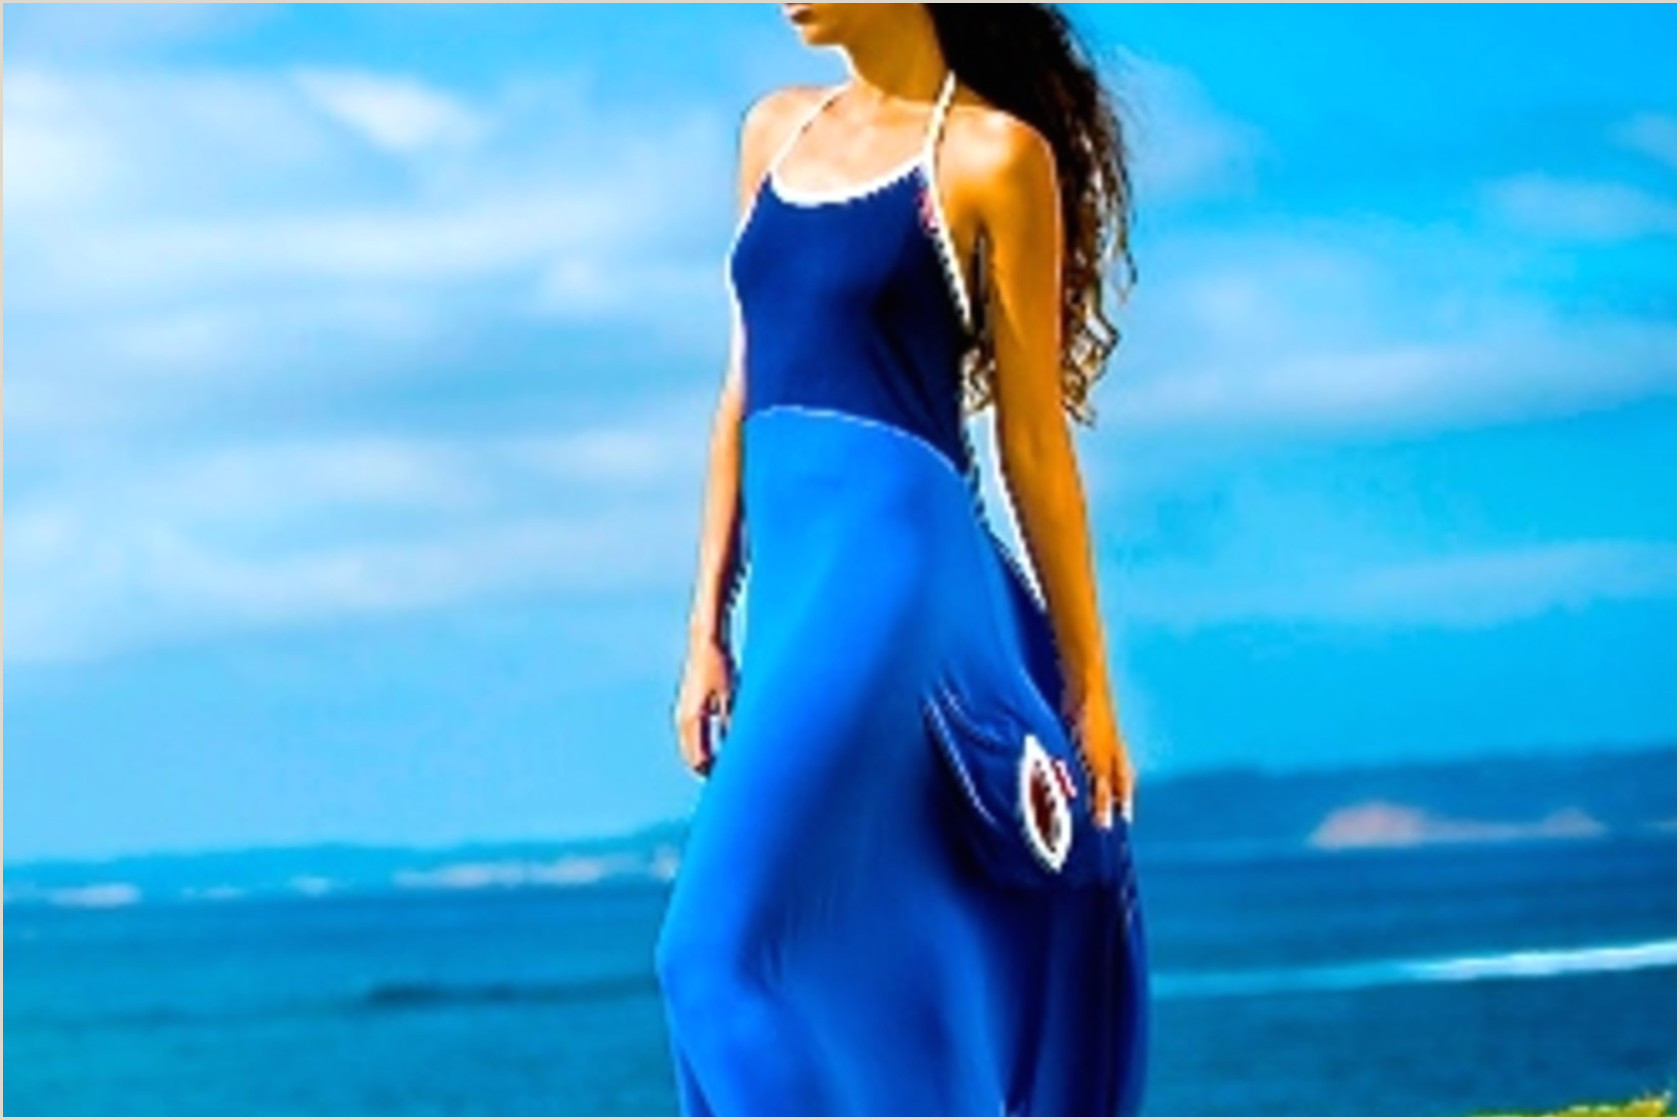 Vertical Runner Coupon Women S Sports Clothes That Address Gender Based Challenges